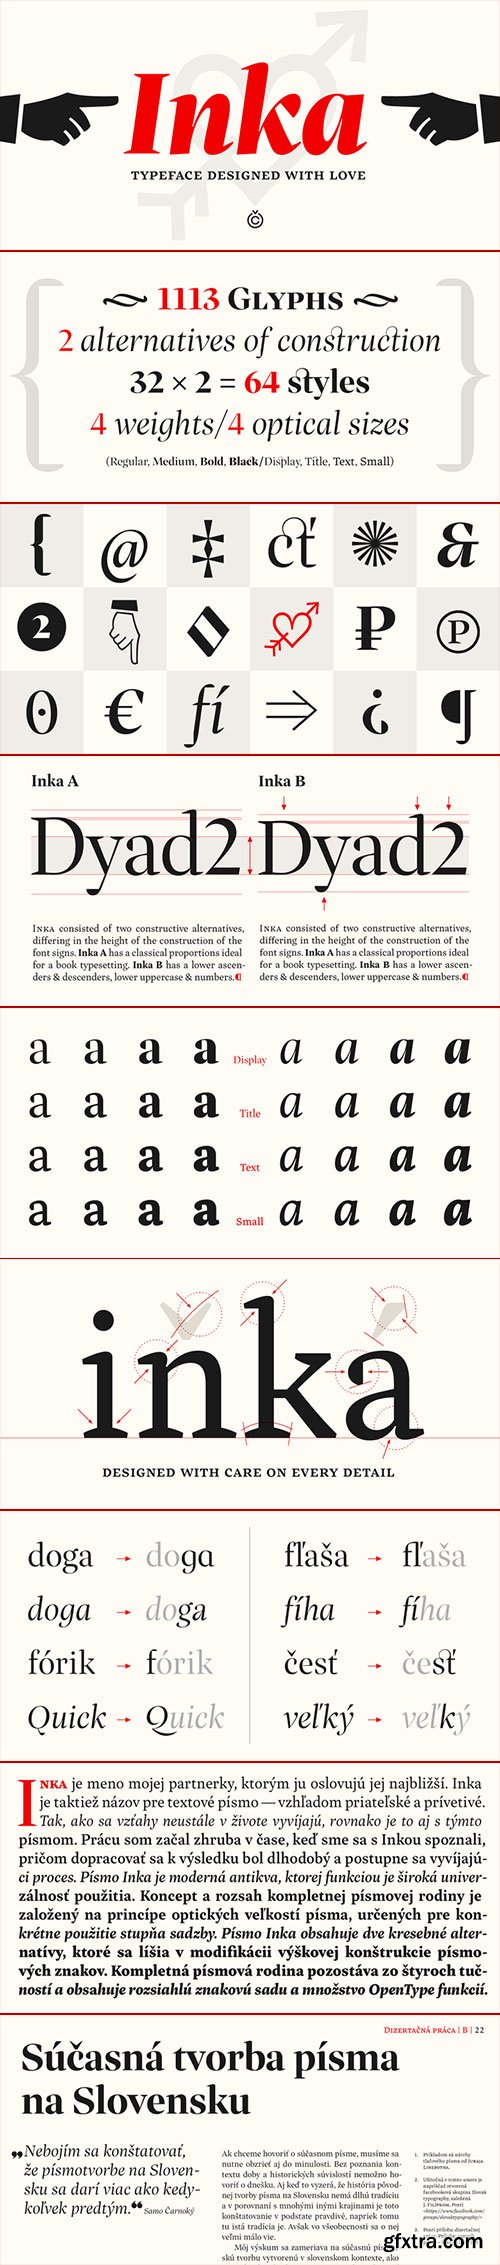 Inka - Typeface Designed by Love 64xOTF $686 NEW!